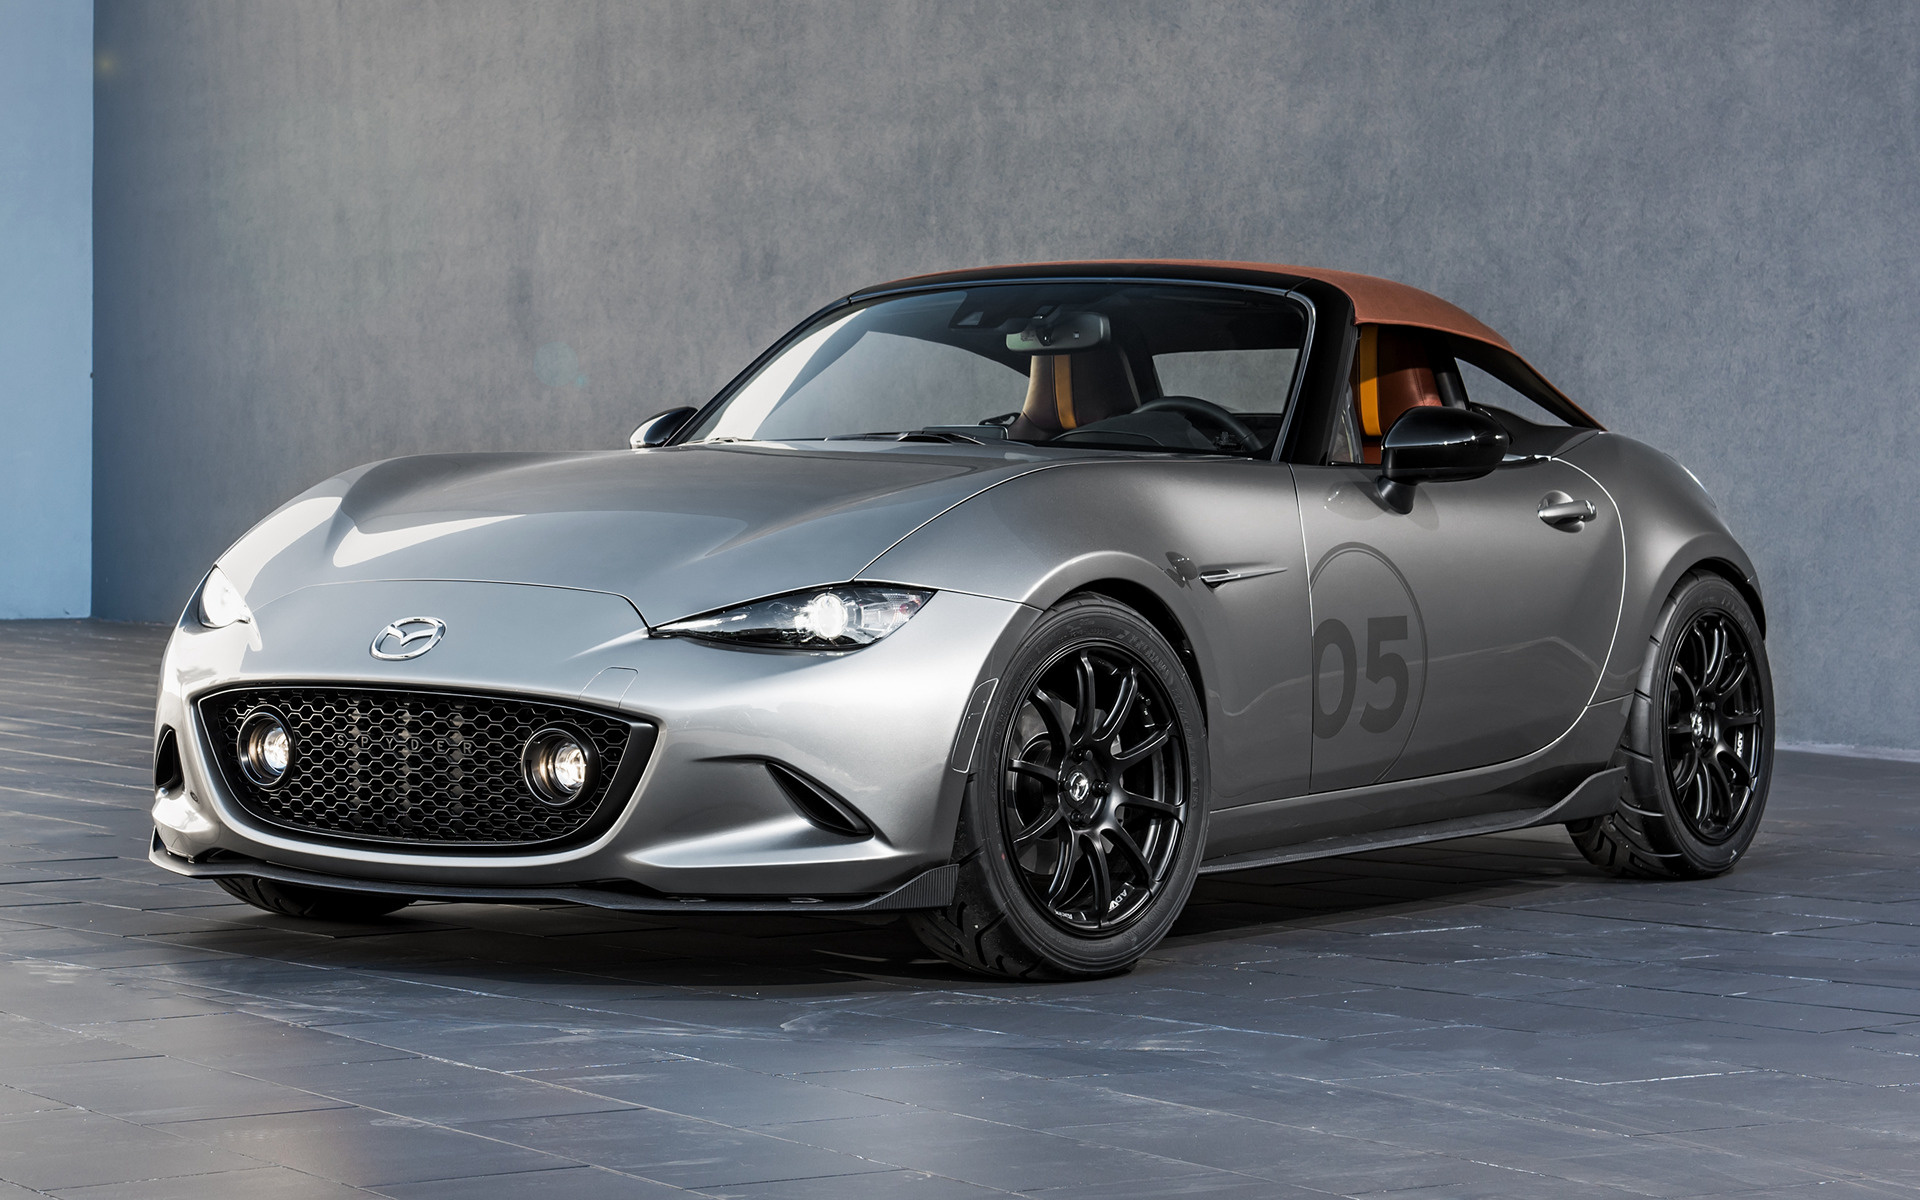 2015 Mazda MX-5 Spyder Concept - Wallpapers and HD Images ...